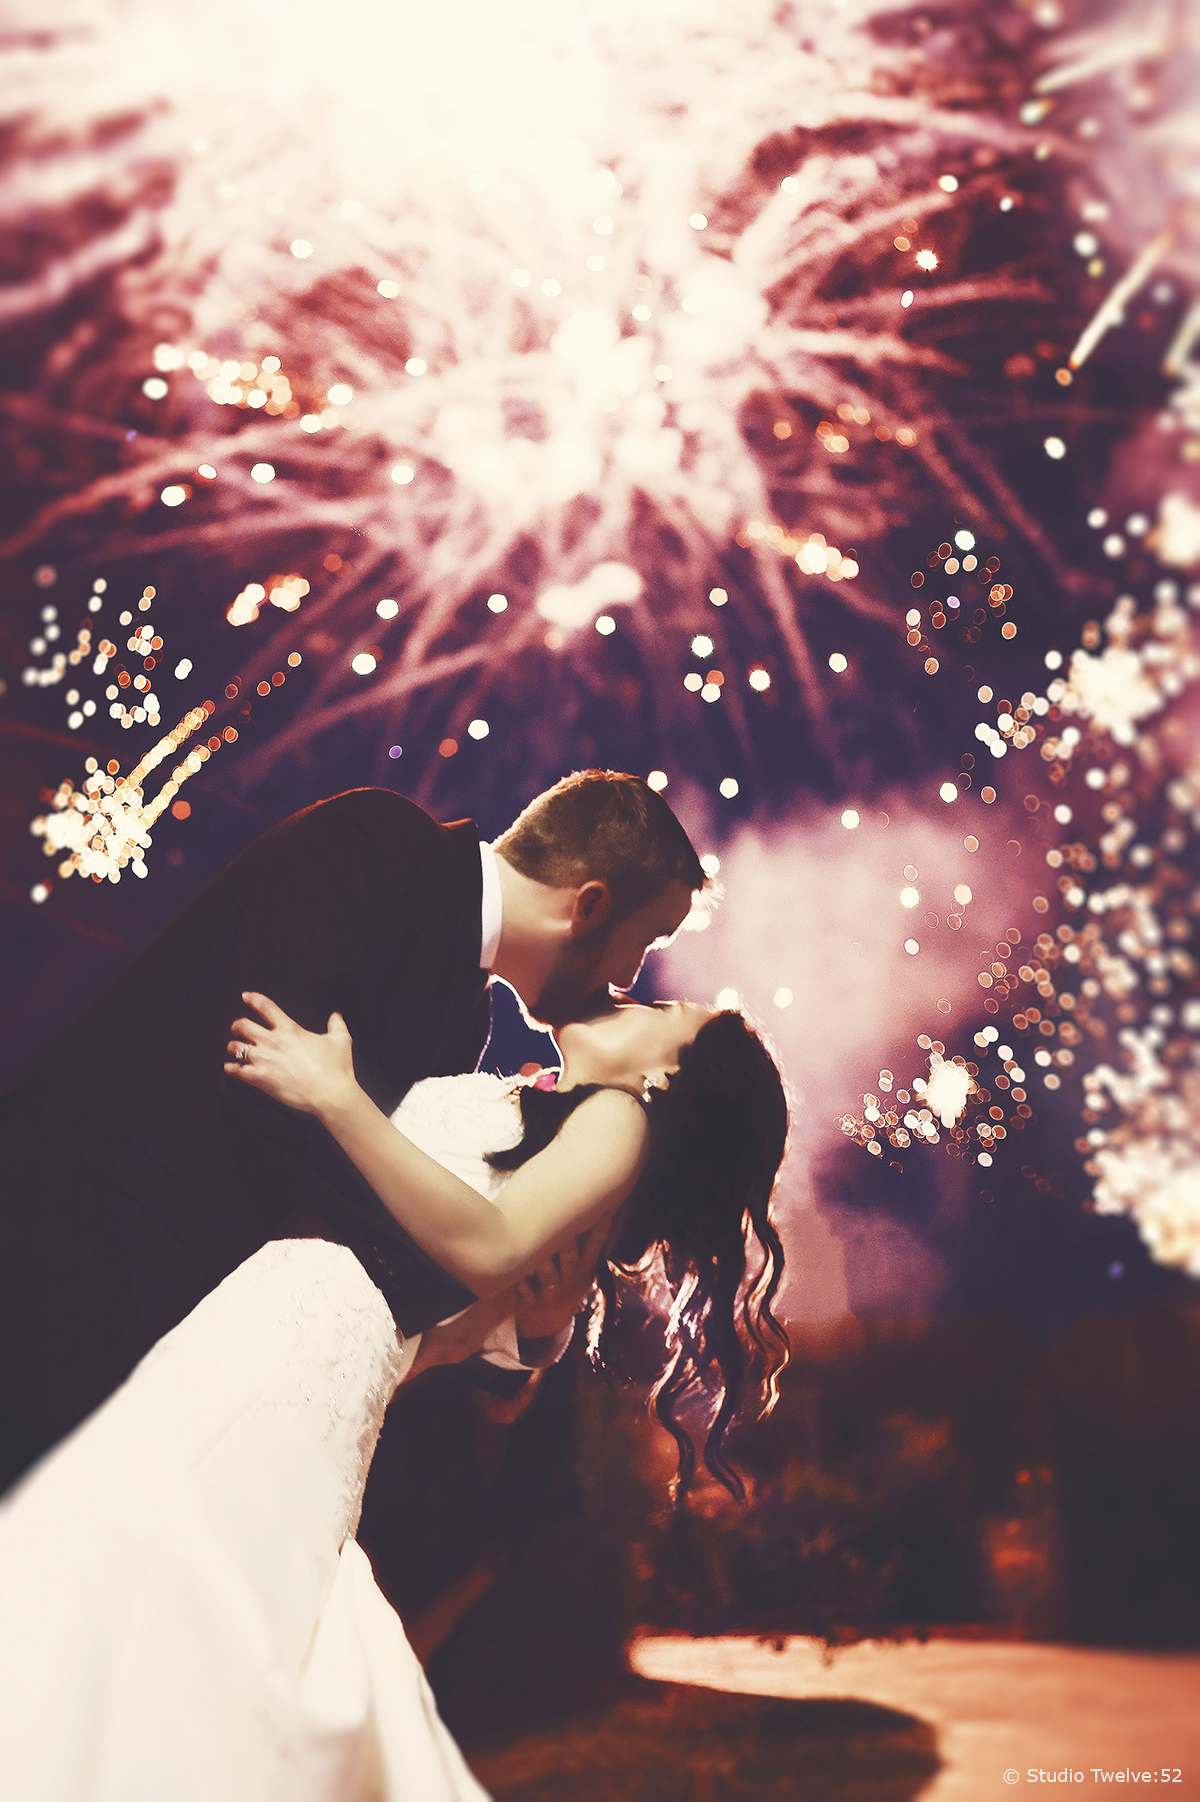 Wedding Entertainment Ideas - Fireworks ©Studio Twelve:52